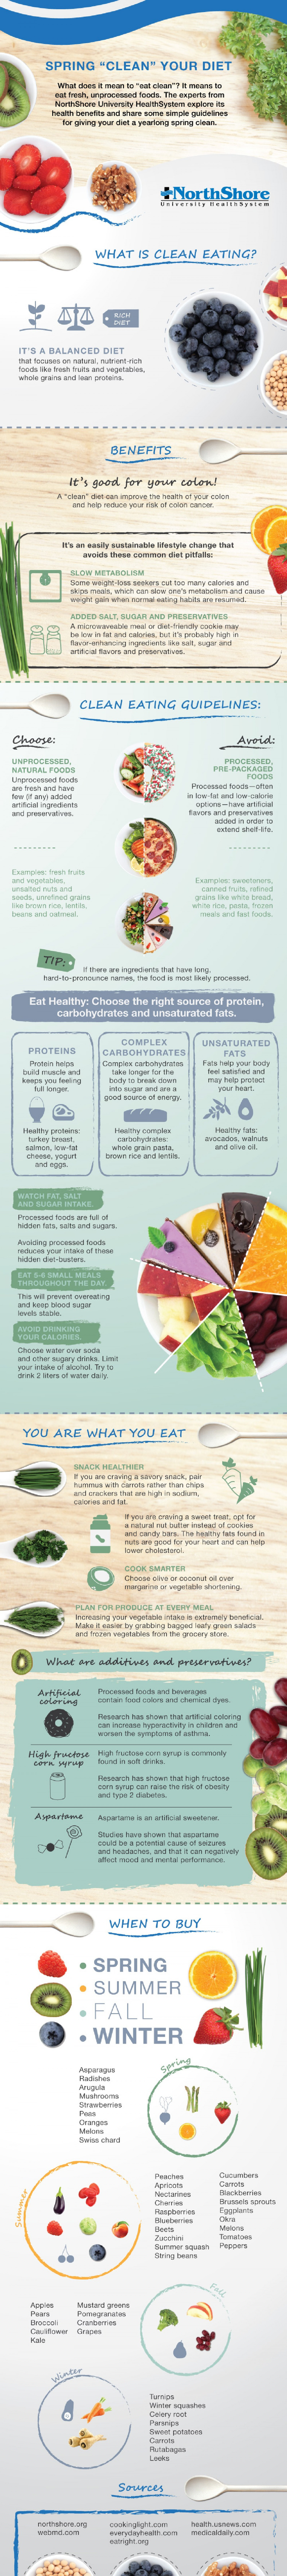 "Spring ""Clean"" Your Diet: Clean Eating Guidelines and Benefits Infographic"